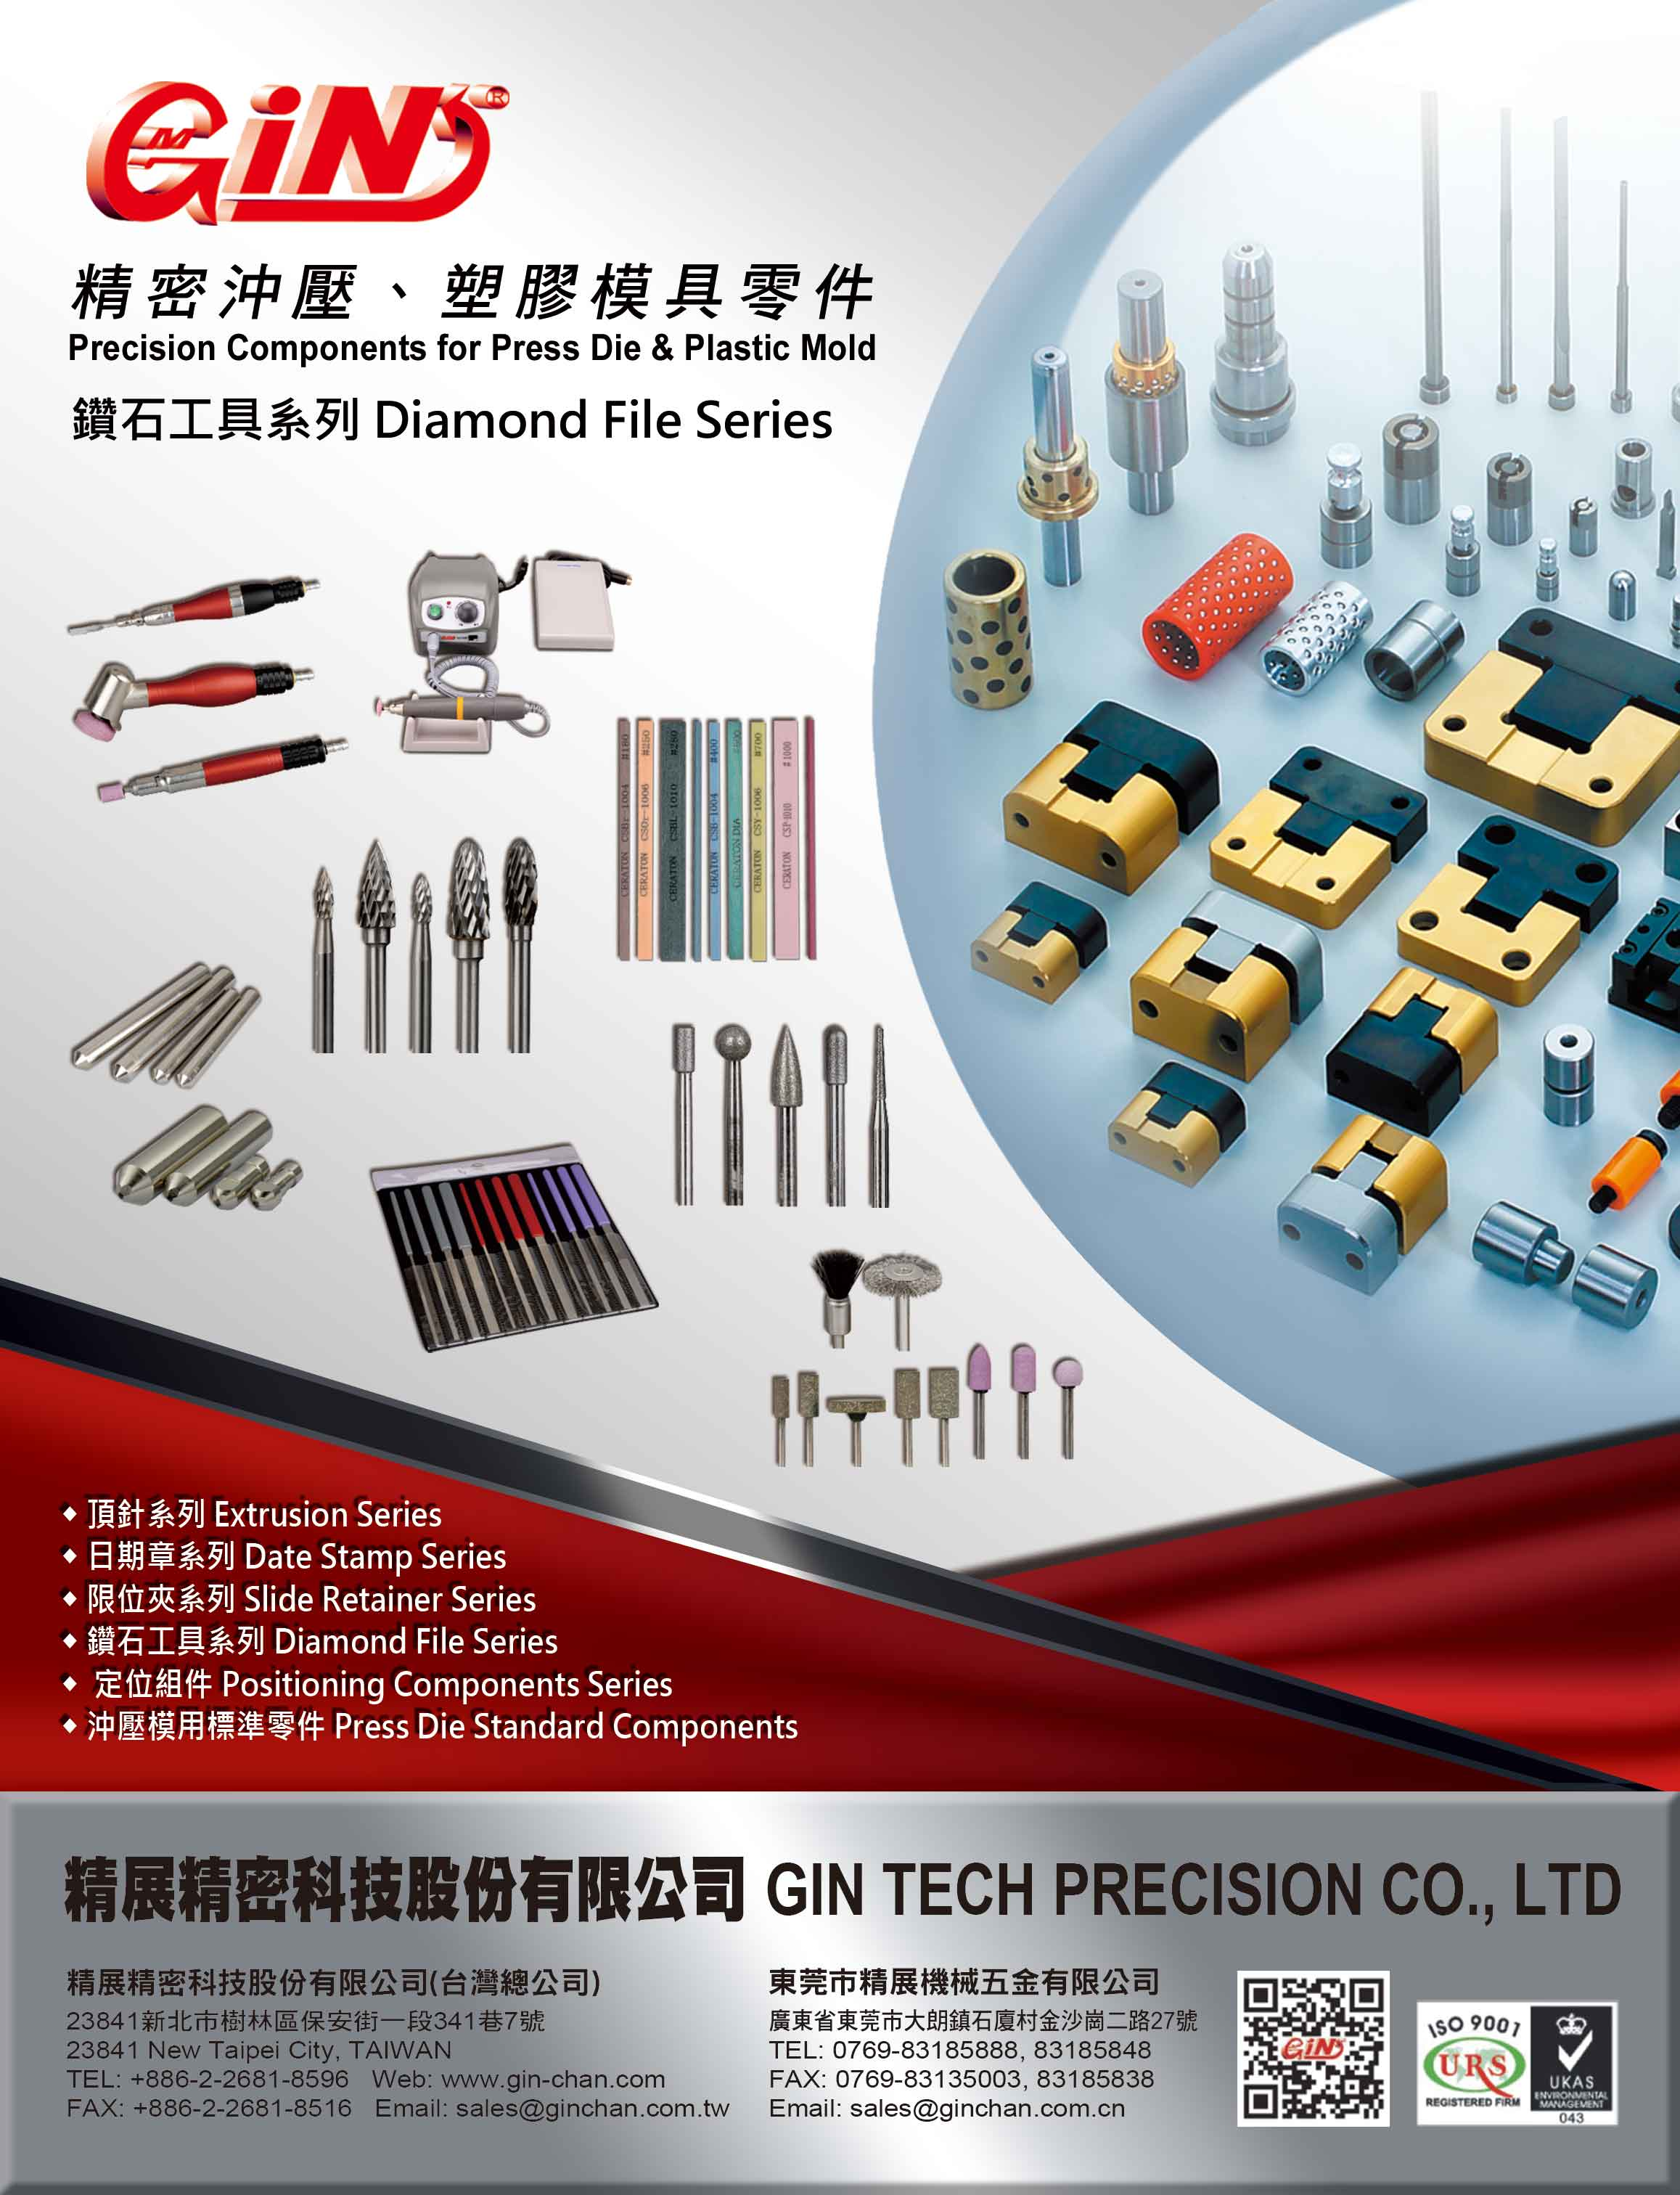 GIN TECH PRECISION CO., LTD.